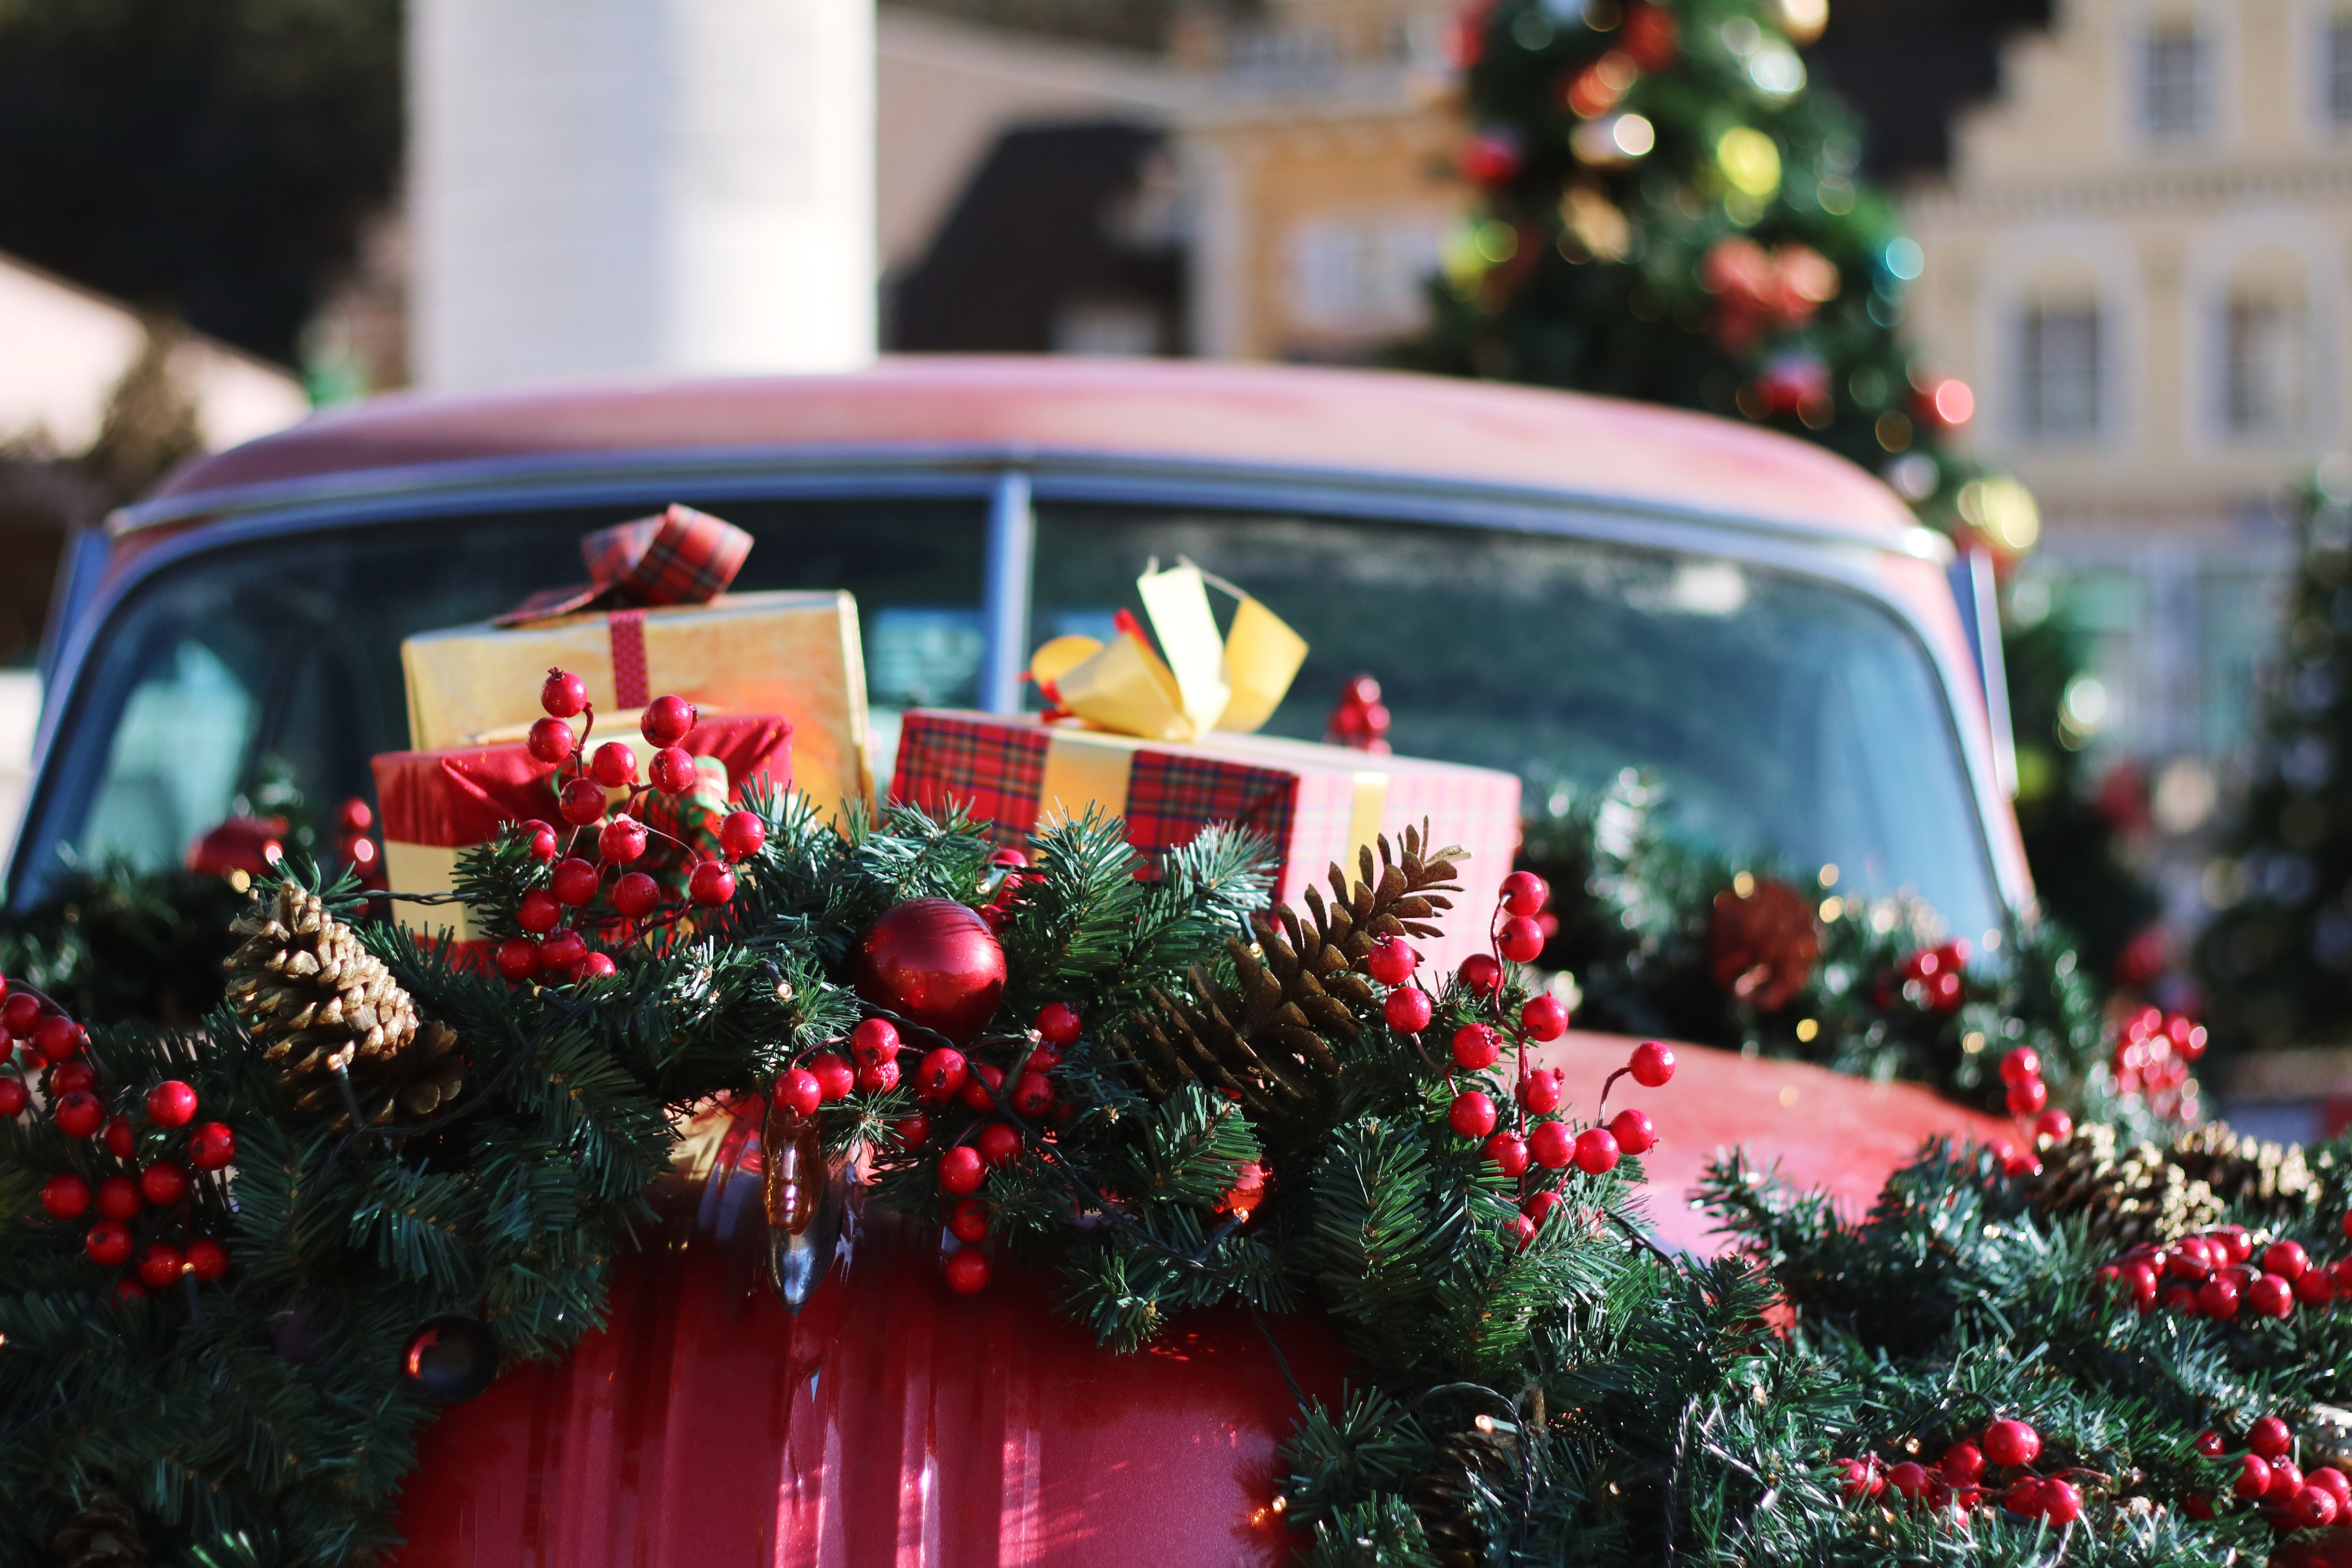 earn money for Christmas with Lyft and Uber